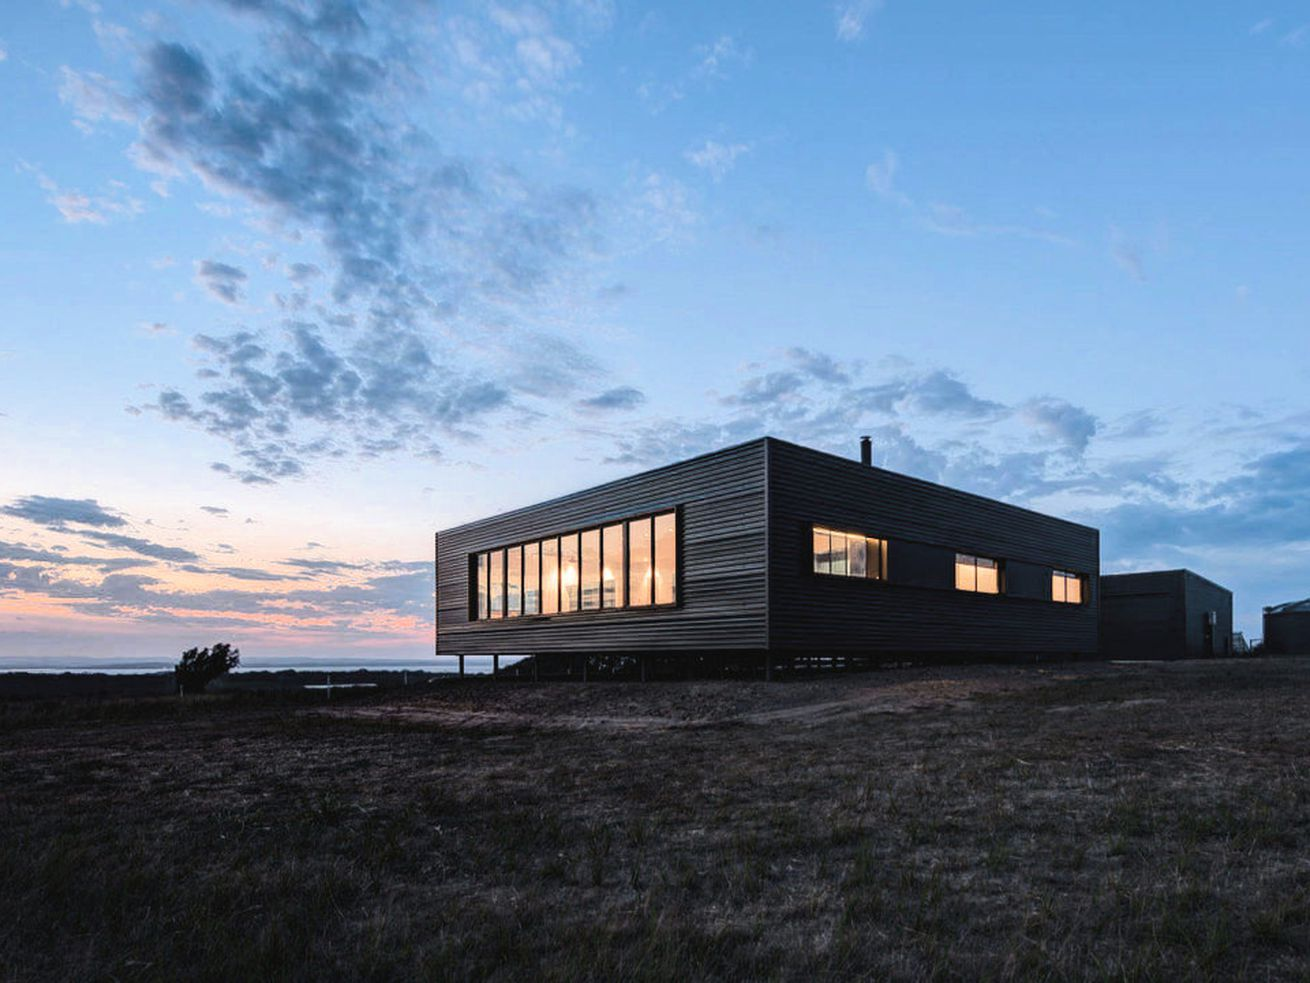 """The 2,000-square-foot home on Australia's French Island was constructed by<a href=""""http://ecoliv.com.au/"""">Ecoliv</a>and designed by architect<a href=""""http://www.laicheongbrown.com/"""">Lai Cheong Brown</a>."""